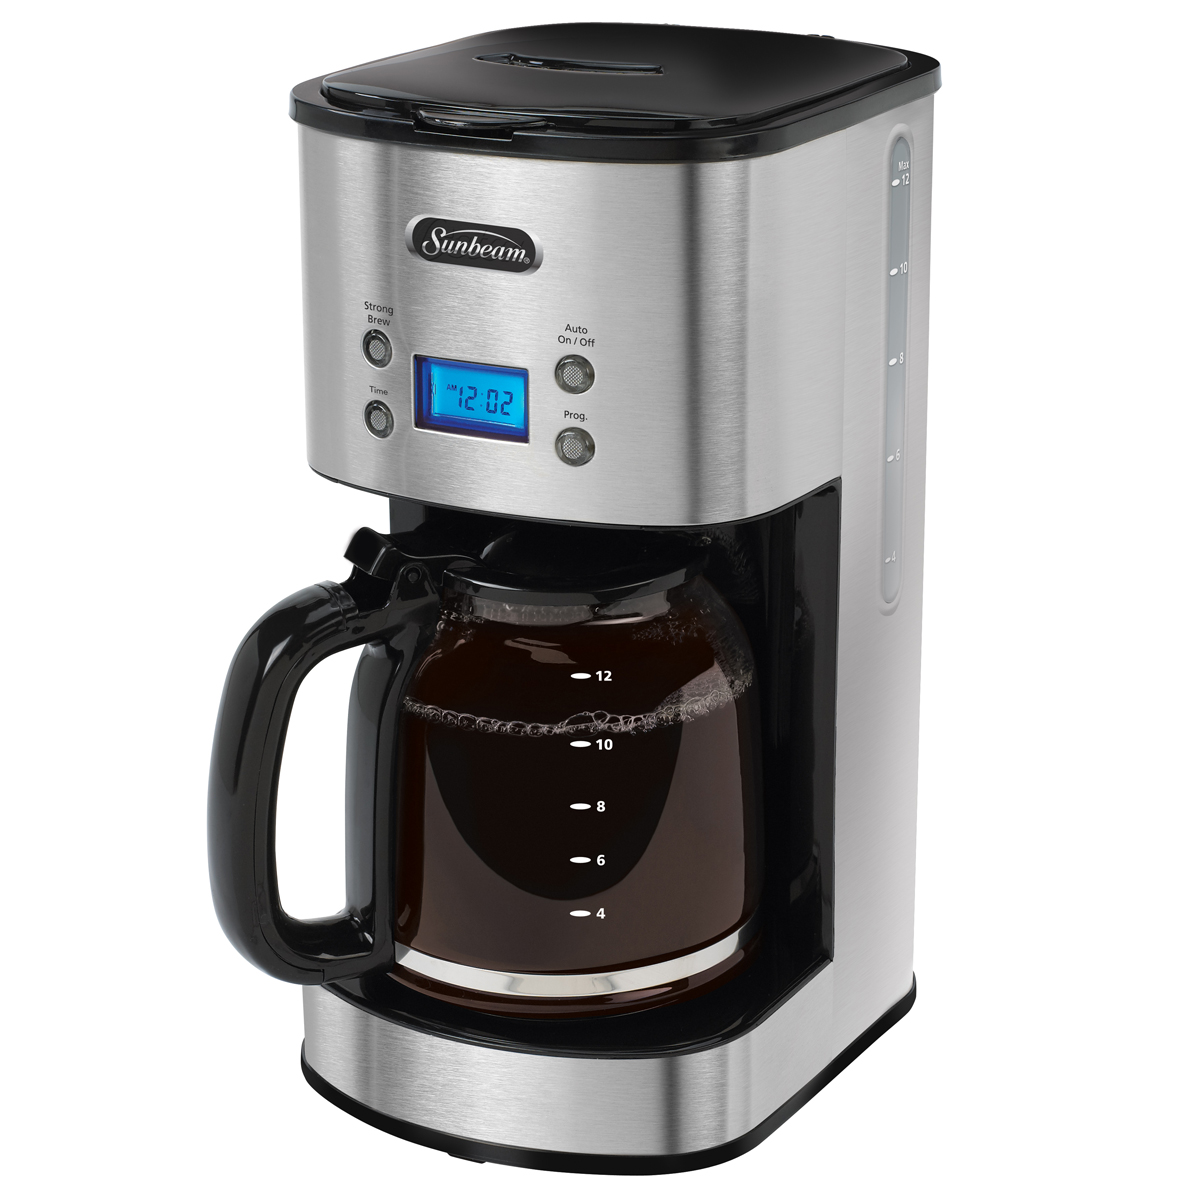 sunbeam 12 cup programmable coffeemaker stainless steel. Black Bedroom Furniture Sets. Home Design Ideas